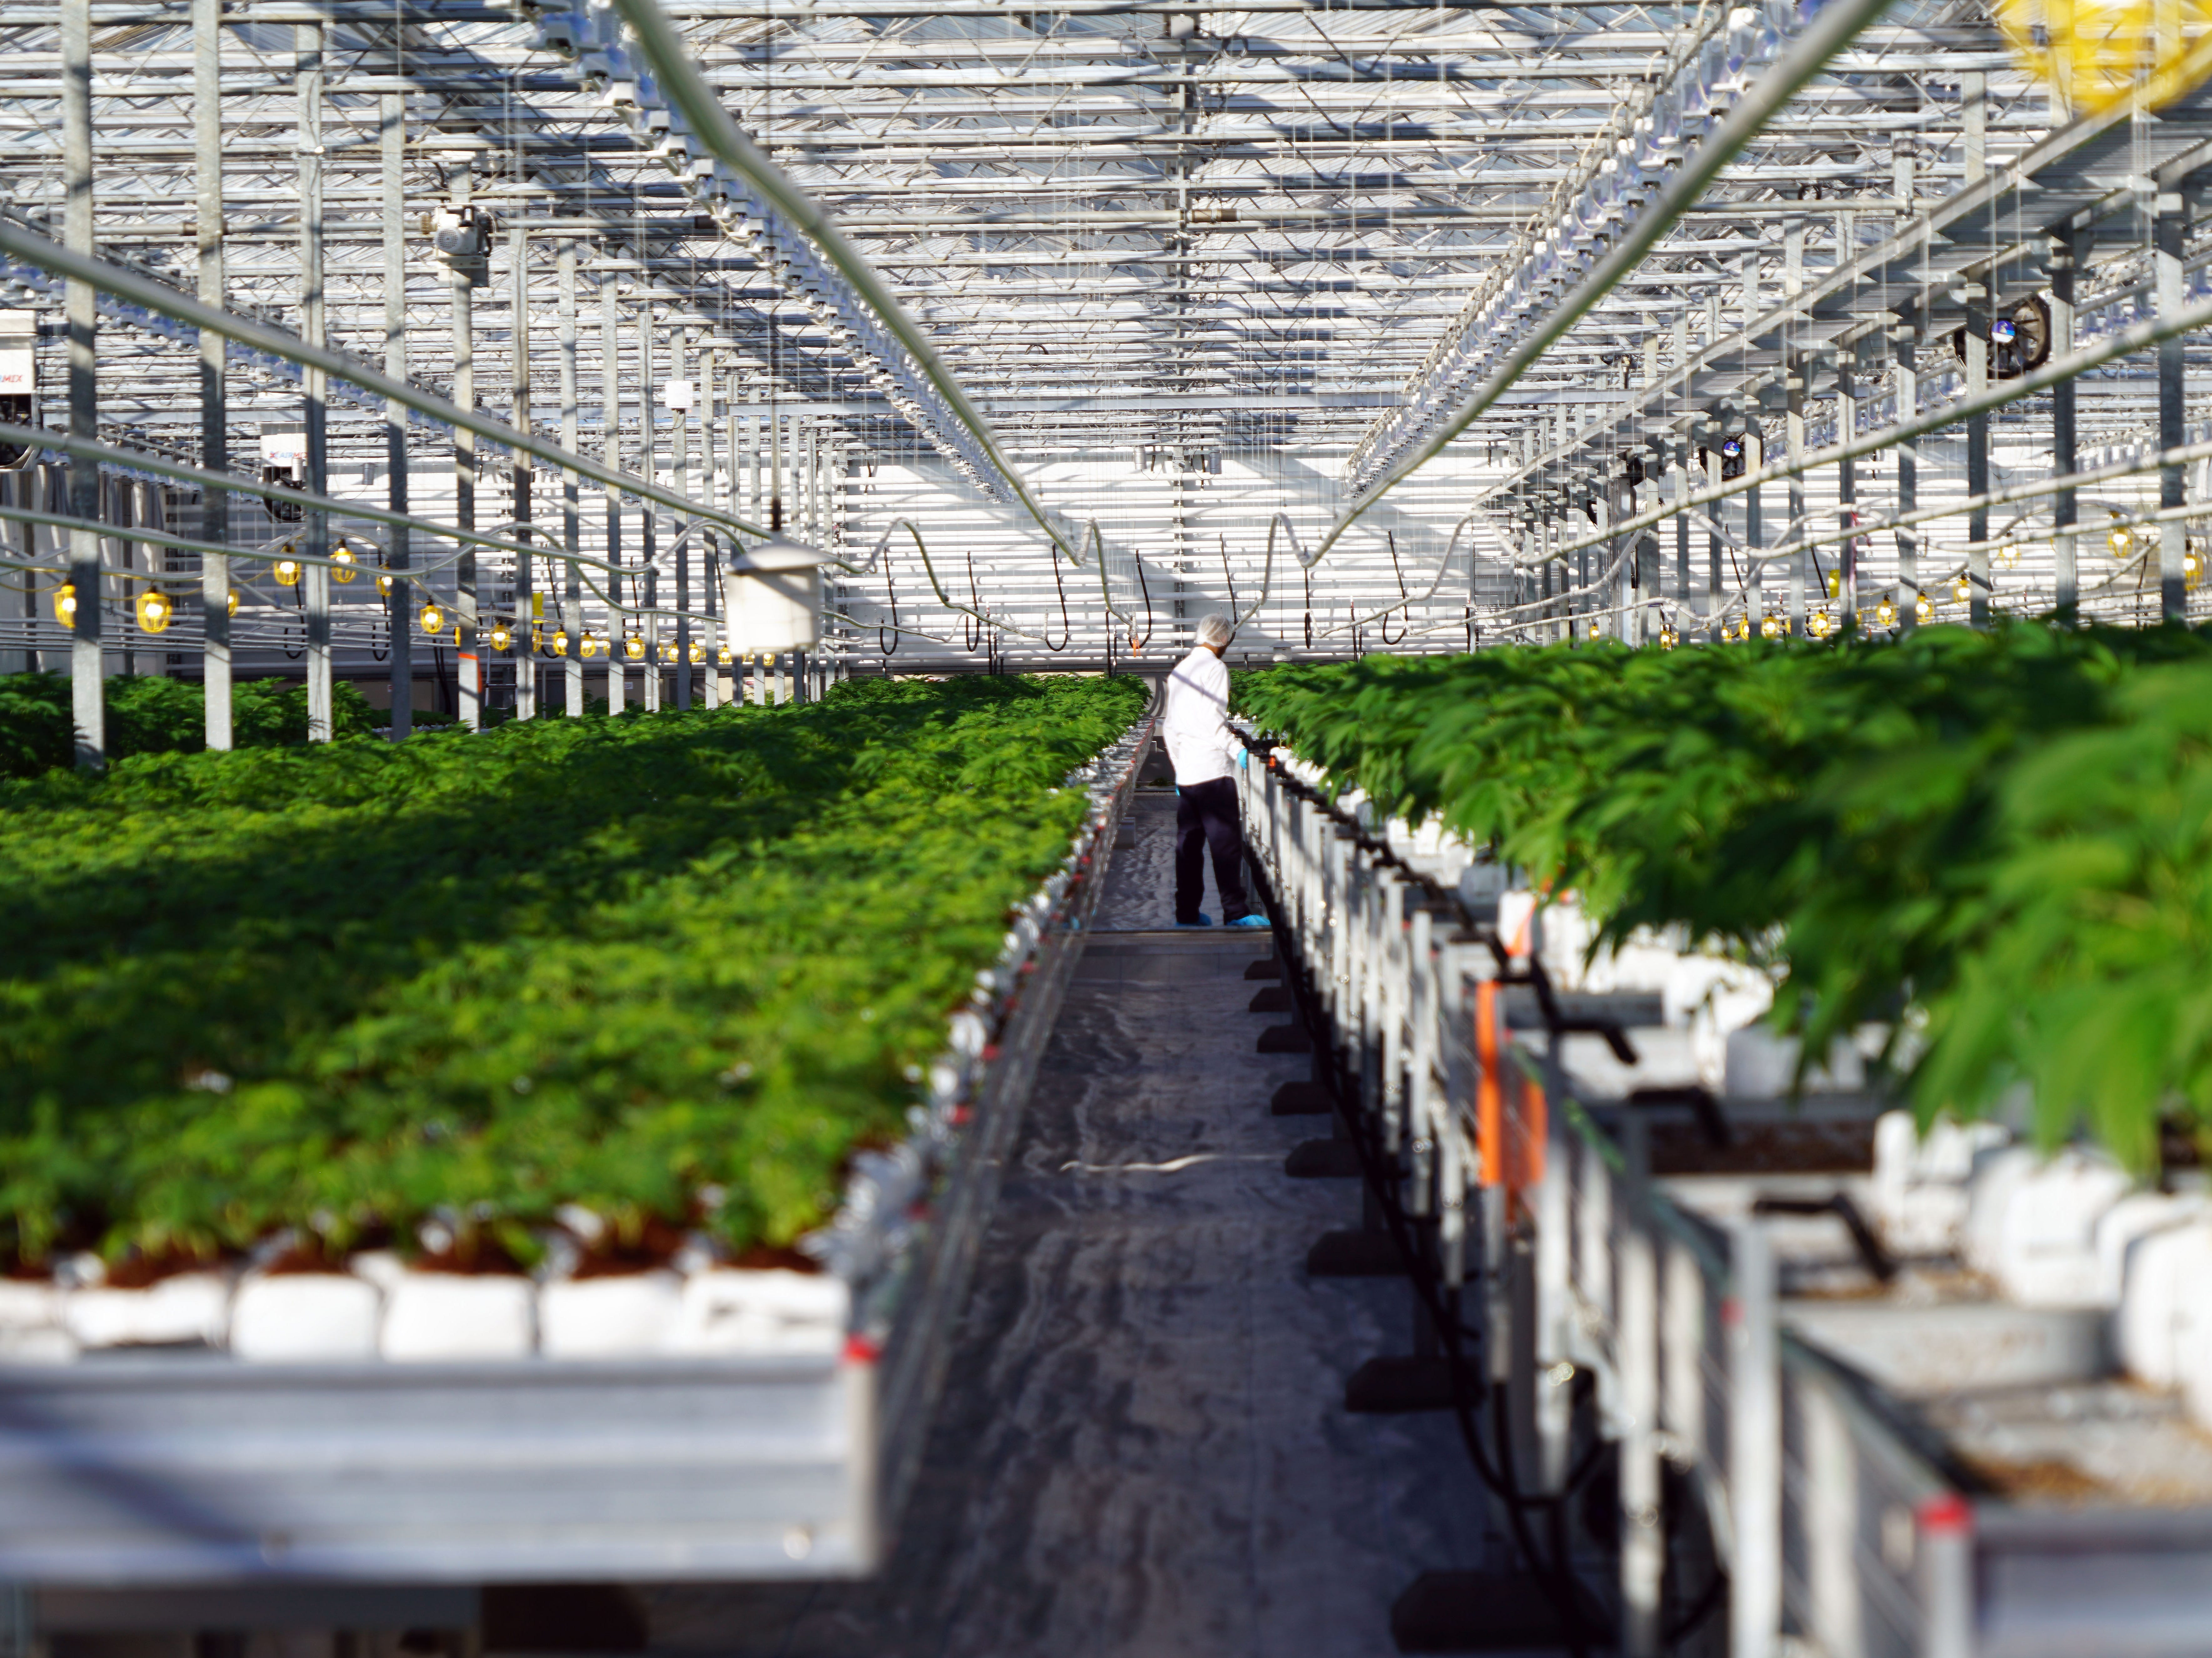 Future of legal marijuana: Canadian greenhouses could mean cheaper, safer pot